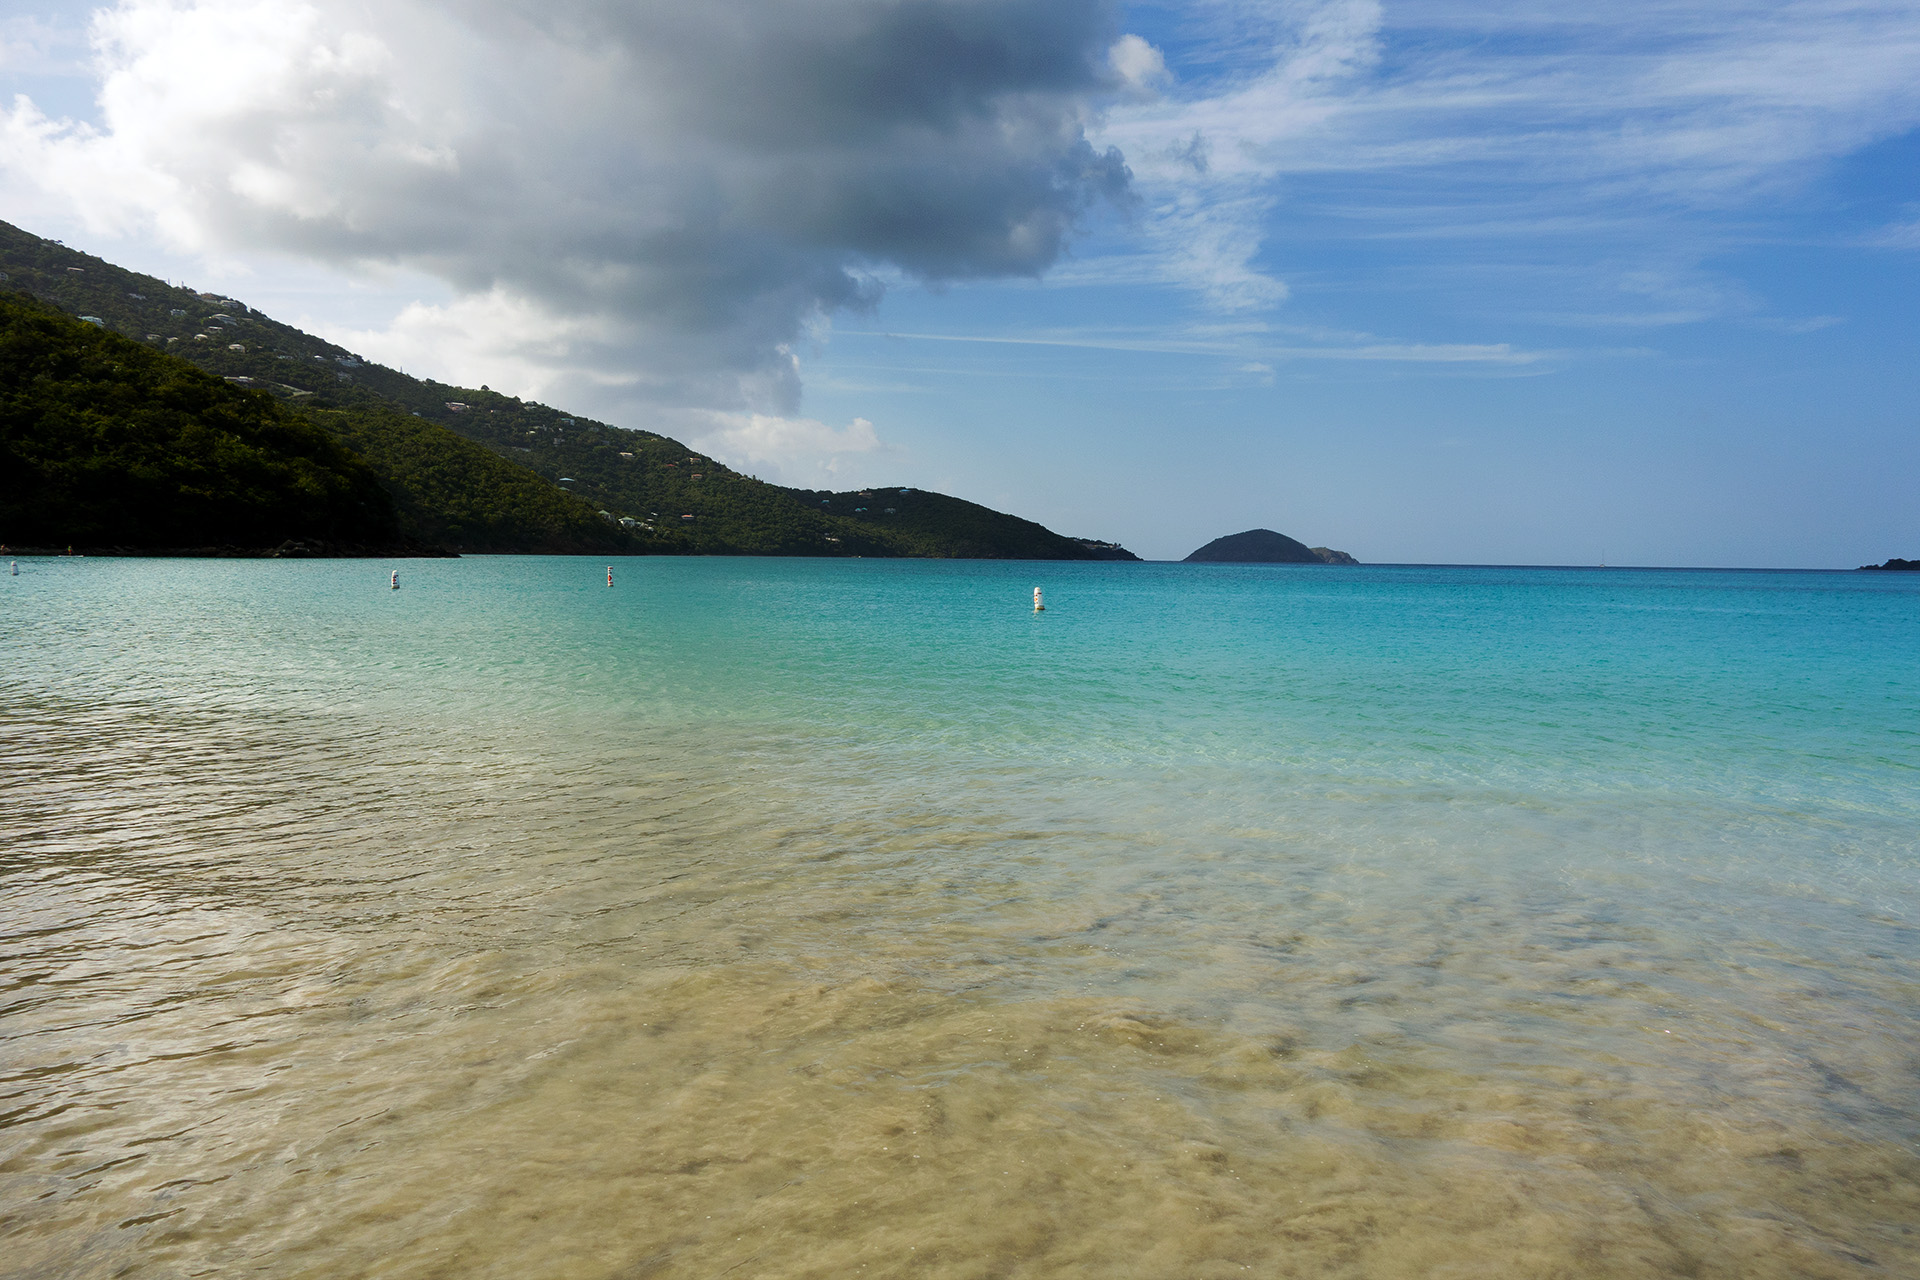 Looking out over Magens Bay.